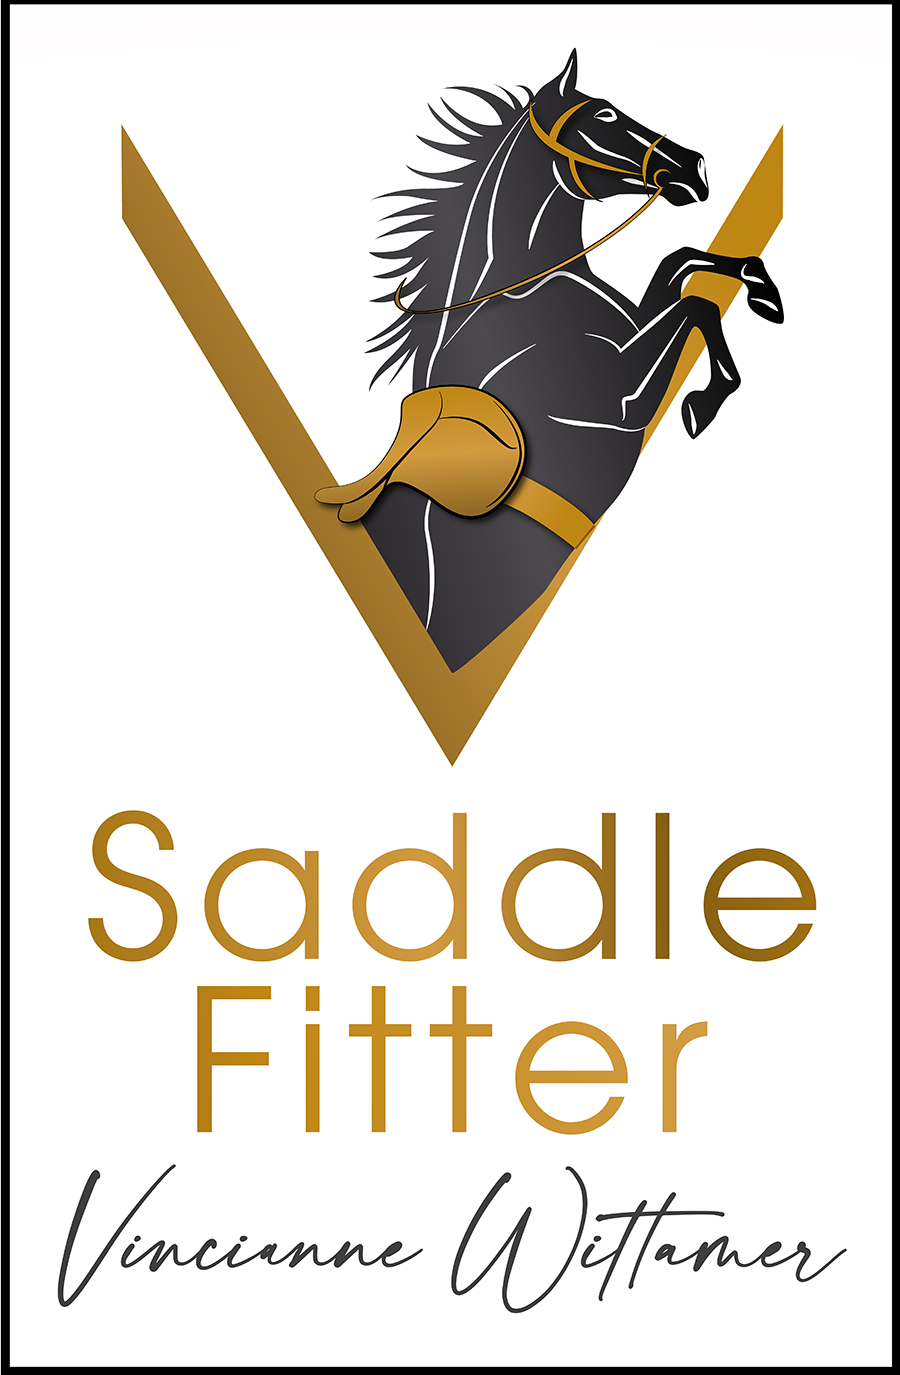 vincianne-wittamer-saddle-fitter